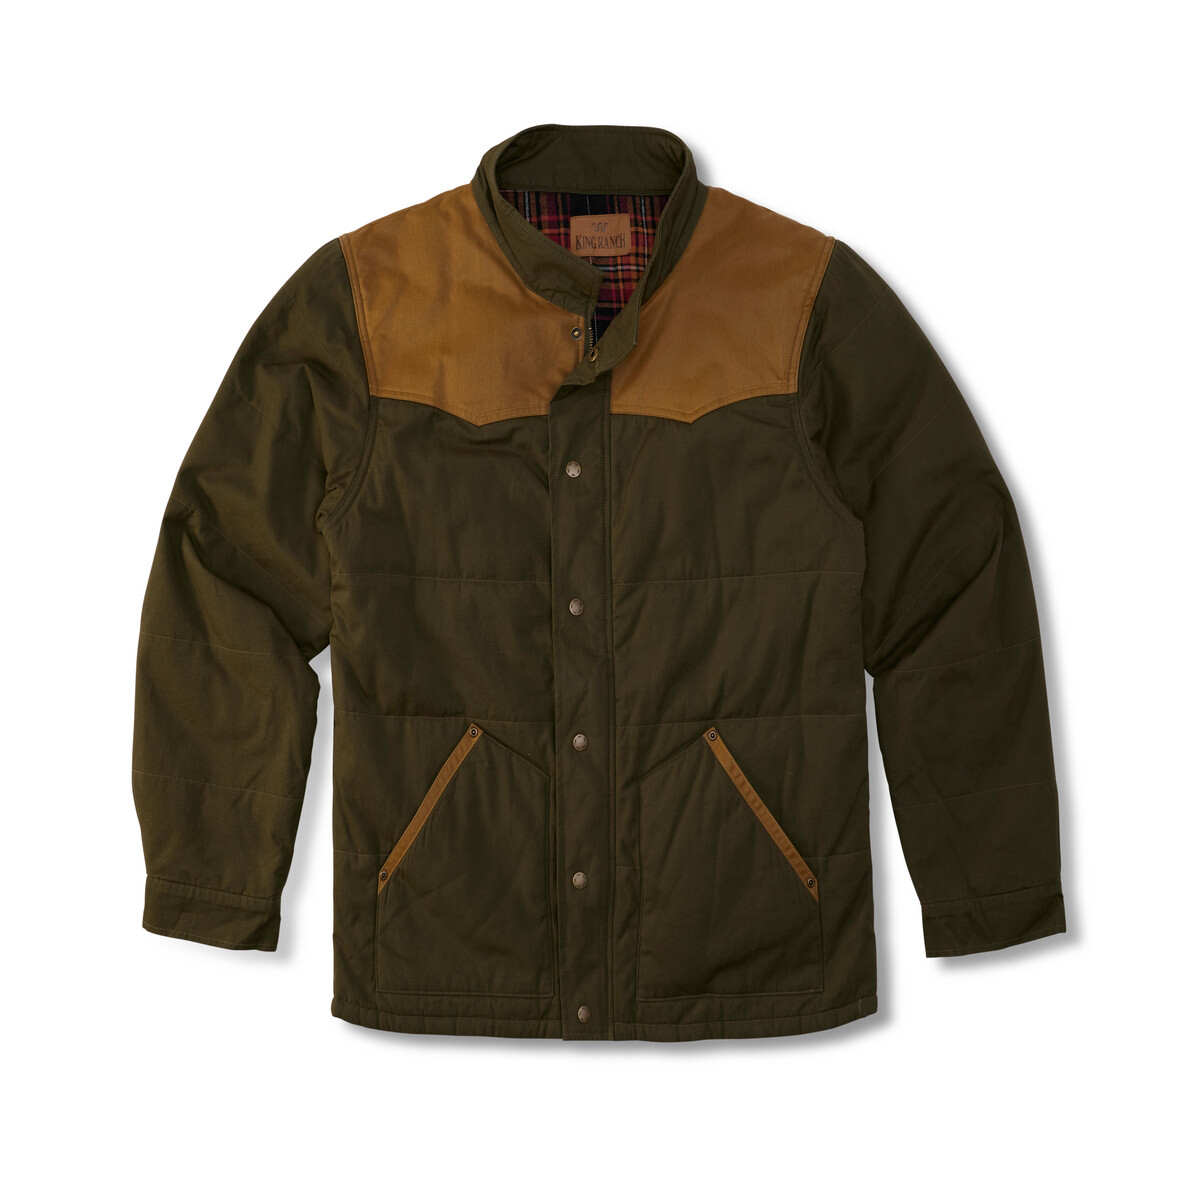 MENS OLIVE AND TAN CONCEAL CARRY JACKET